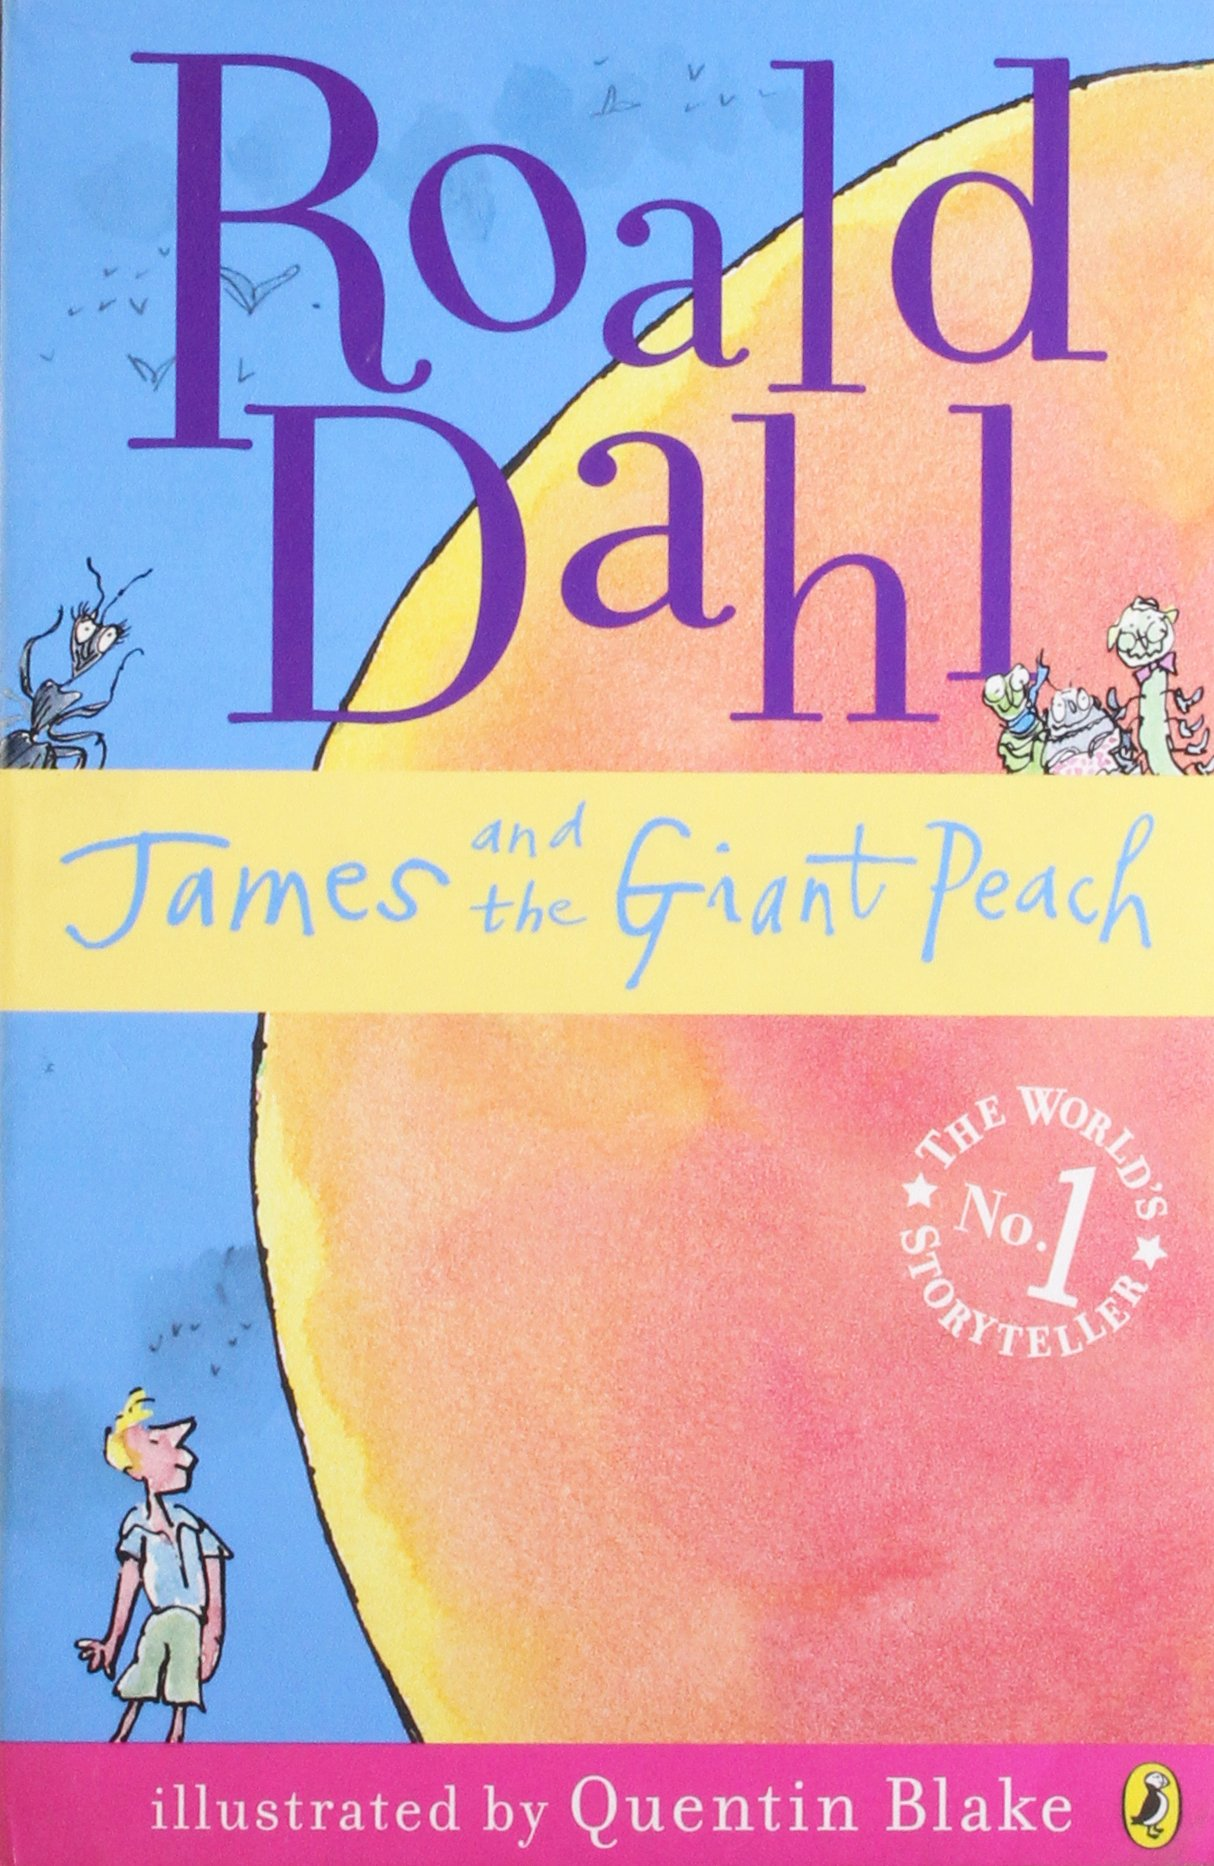 Image result for james and the giant peach book